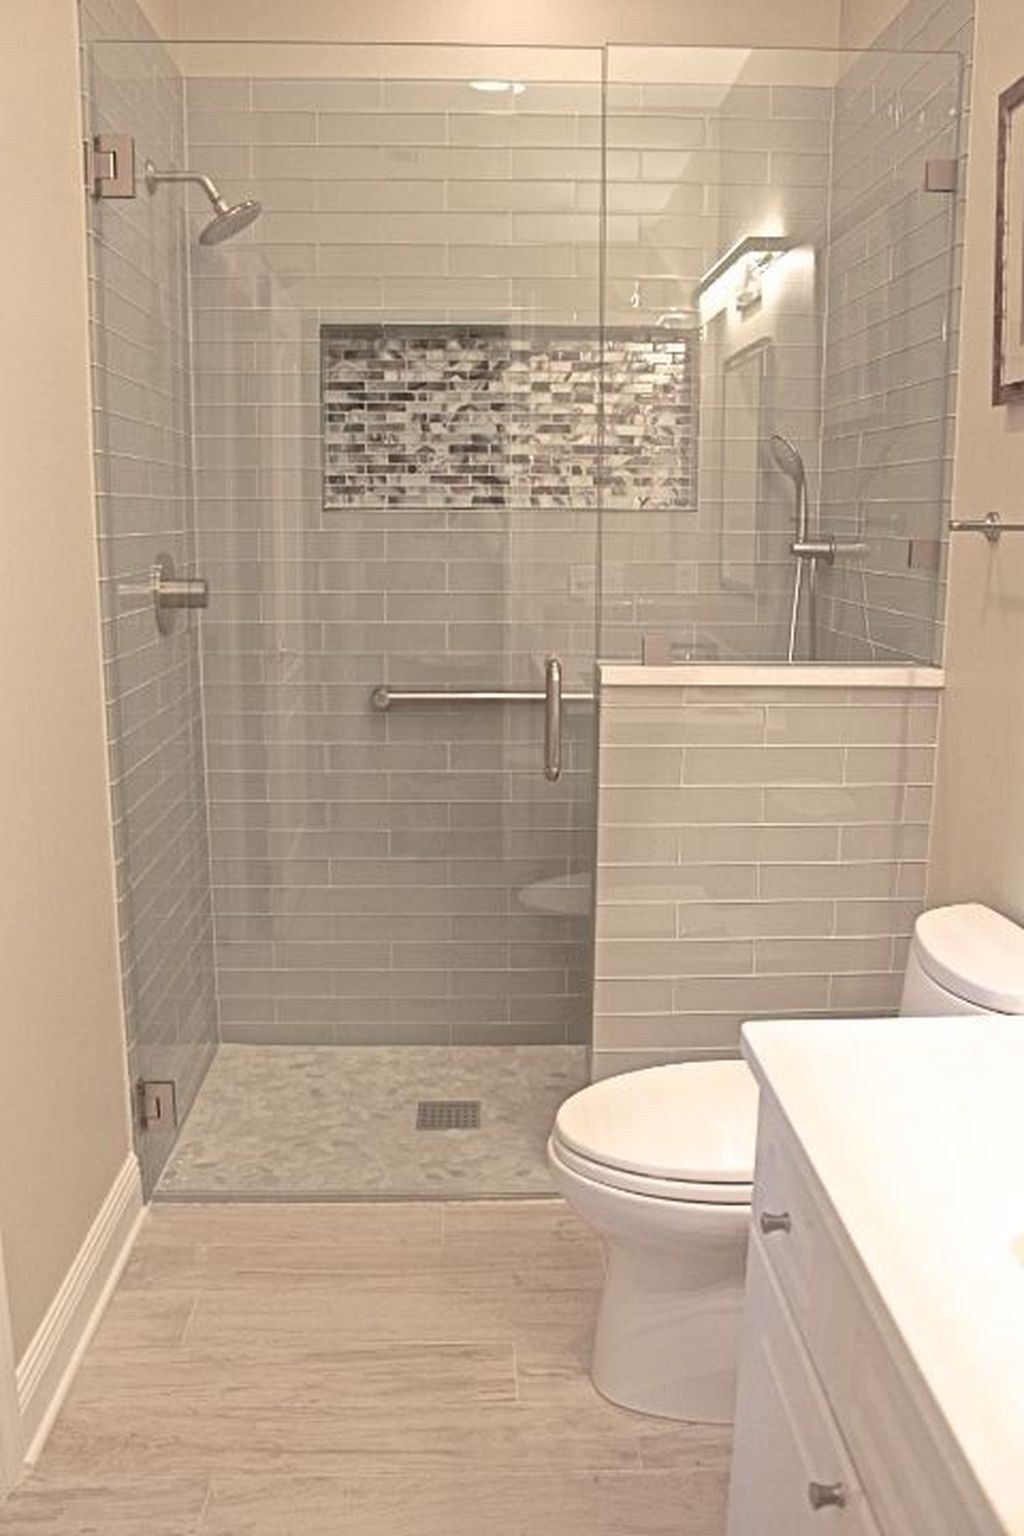 30 Unimaginable Diy Ideas For Bathroom Makeover Con Imagenes